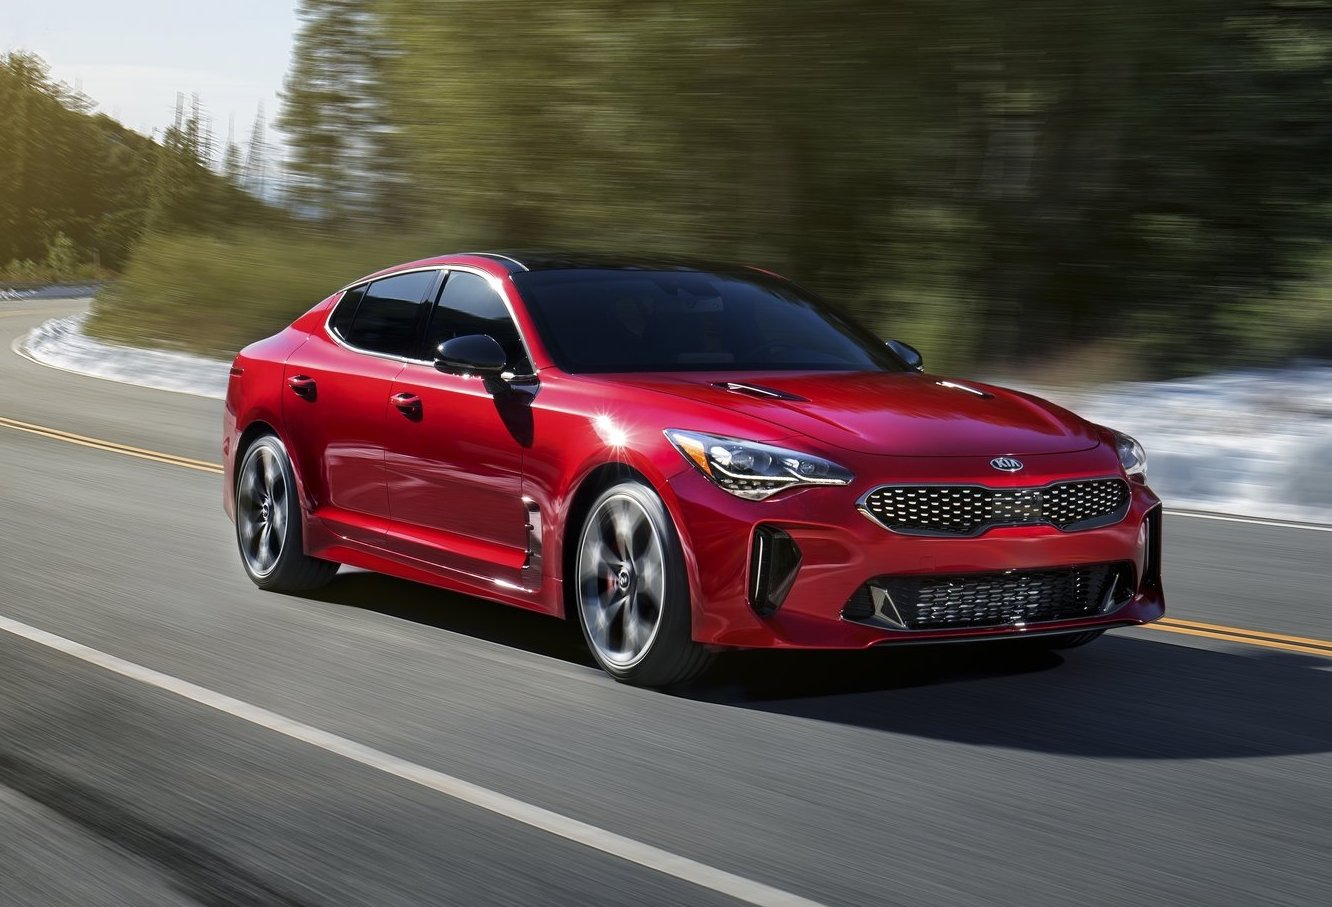 kia australia confirms stinger twin turbo v6 price from 48 990 performancedrive. Black Bedroom Furniture Sets. Home Design Ideas